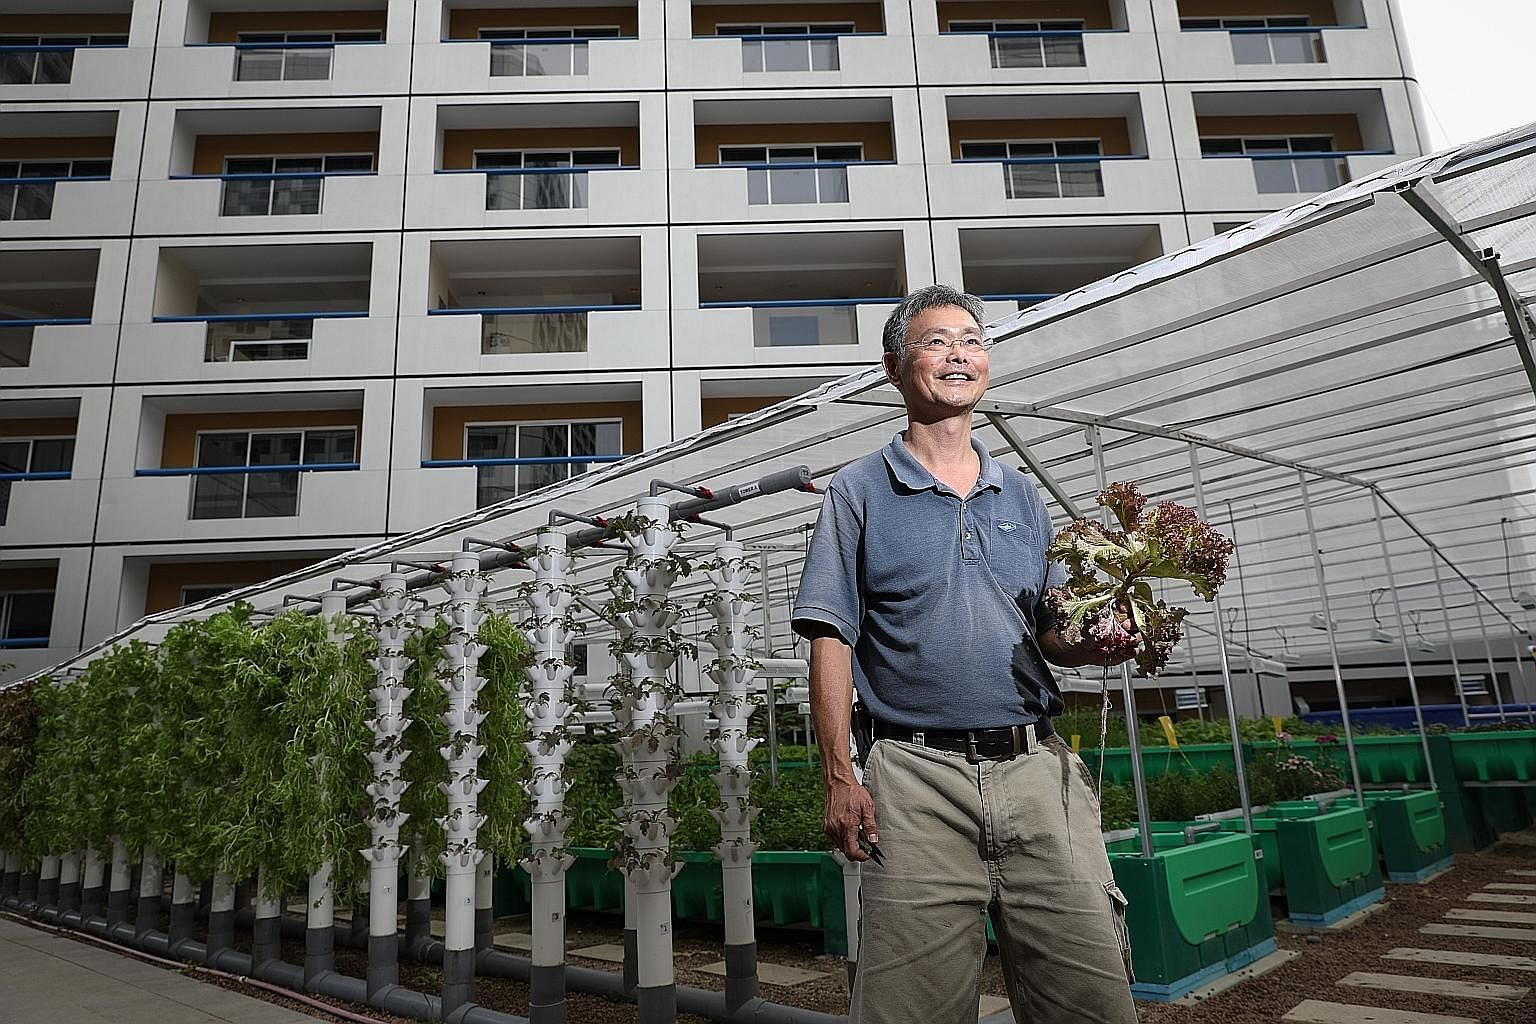 Mr James Lam, 59, a gardener for Fairmont Singapore and Swissotel The Stamford, at the aquaponics garden yesterday. The 450 sq m farm is expected to supply around 30 per cent of vegetables and 10 per cent of the fish needed in both hotels within 10 m